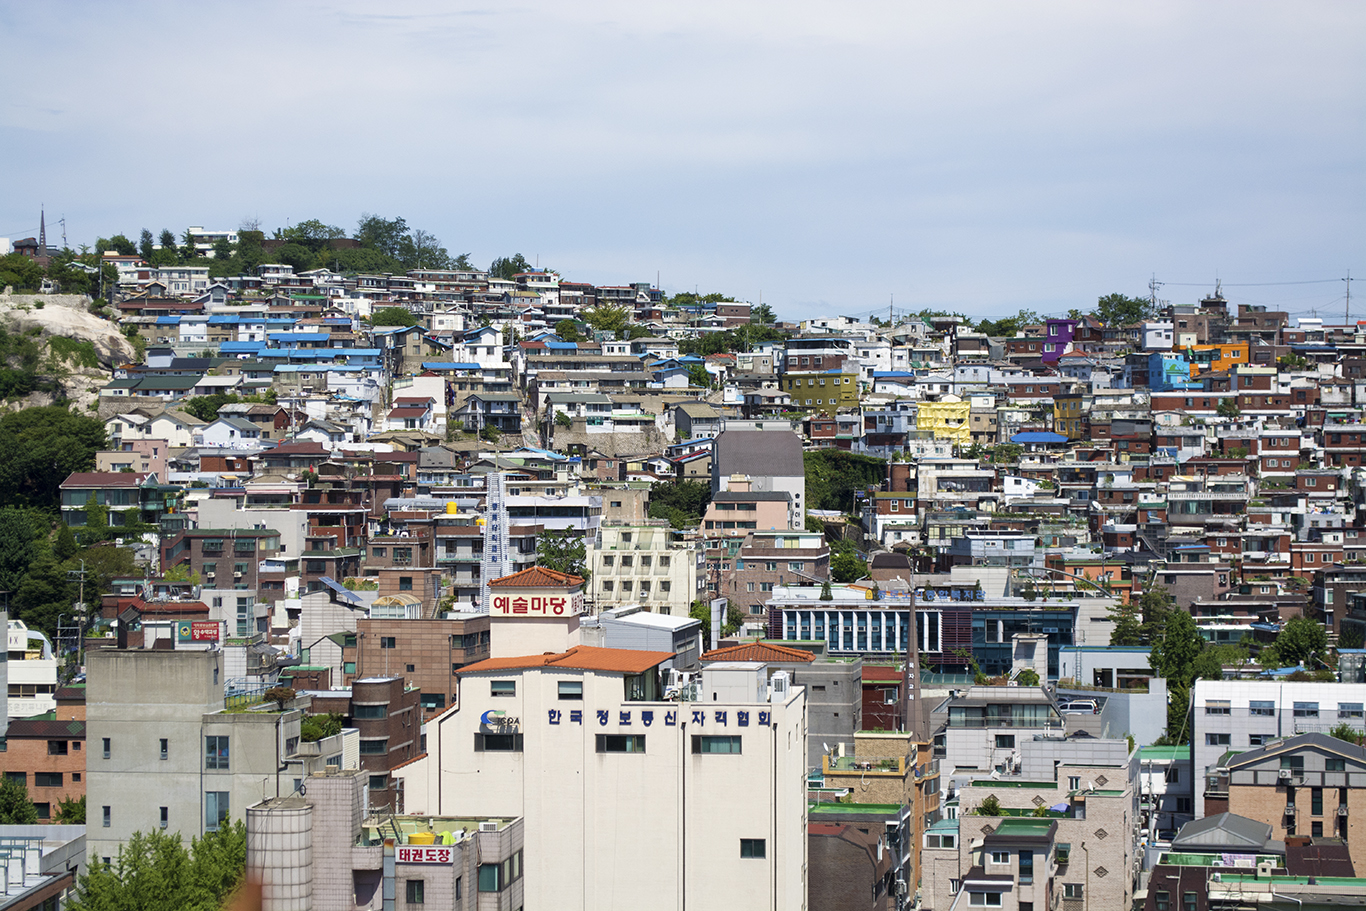 A Dal-dongne, or Moon Village, in Seoul. Moon Villages are a type of slum that formed in the aftermath of rapid urbanization in the '60s after the end of the Korean War.(CHRISTOPHER CAMERON/THE STATESMAN)